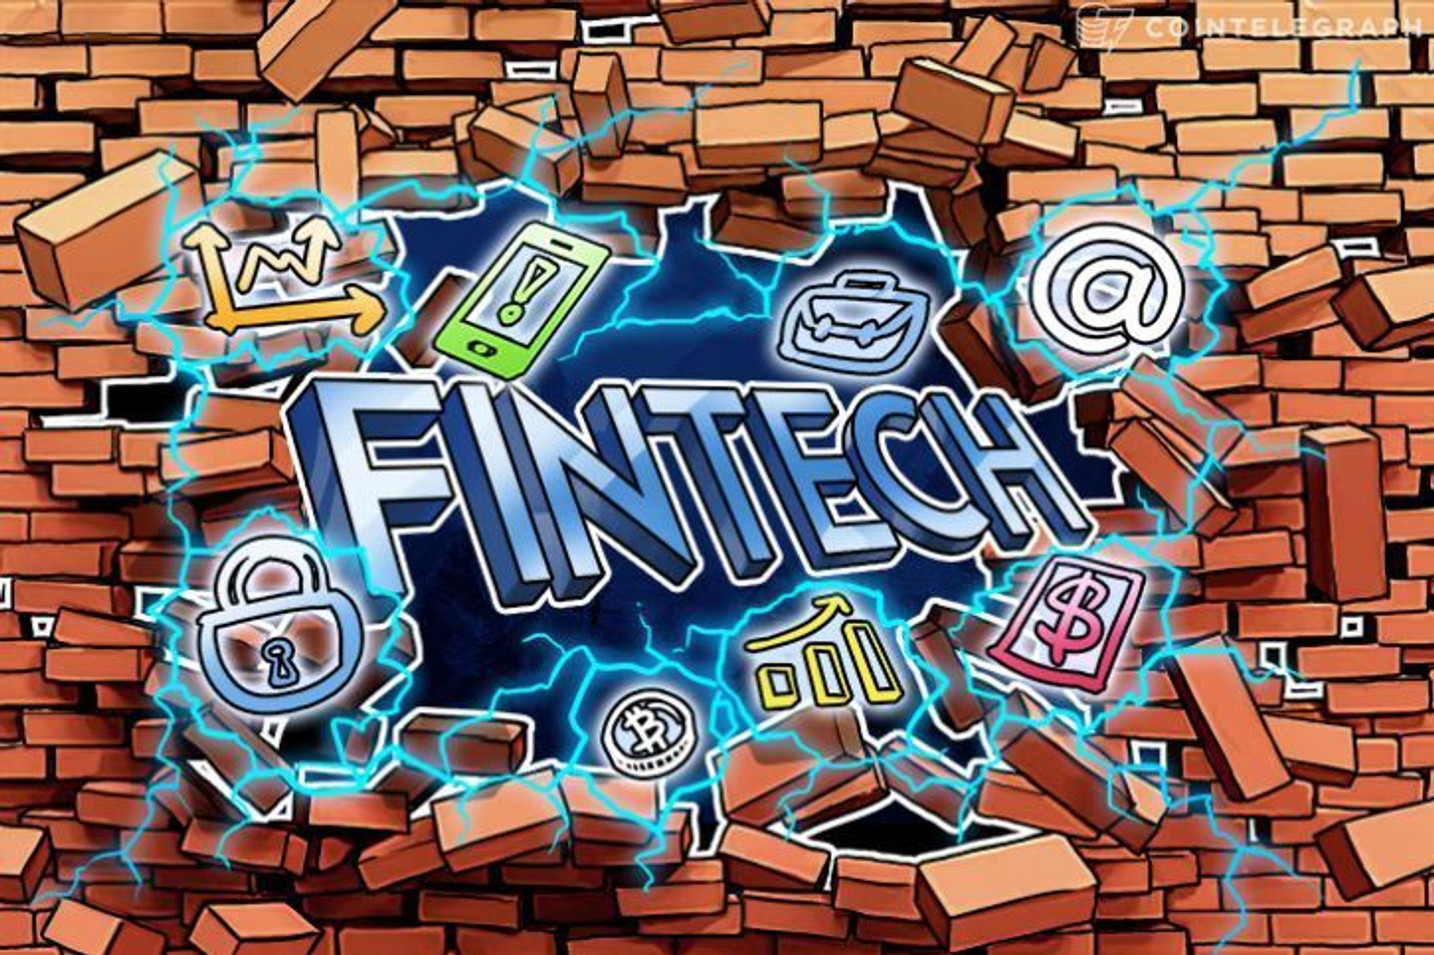 Fujitsu Partners With Bankers' Association to Pilot Blockchain Technology in Financial Services